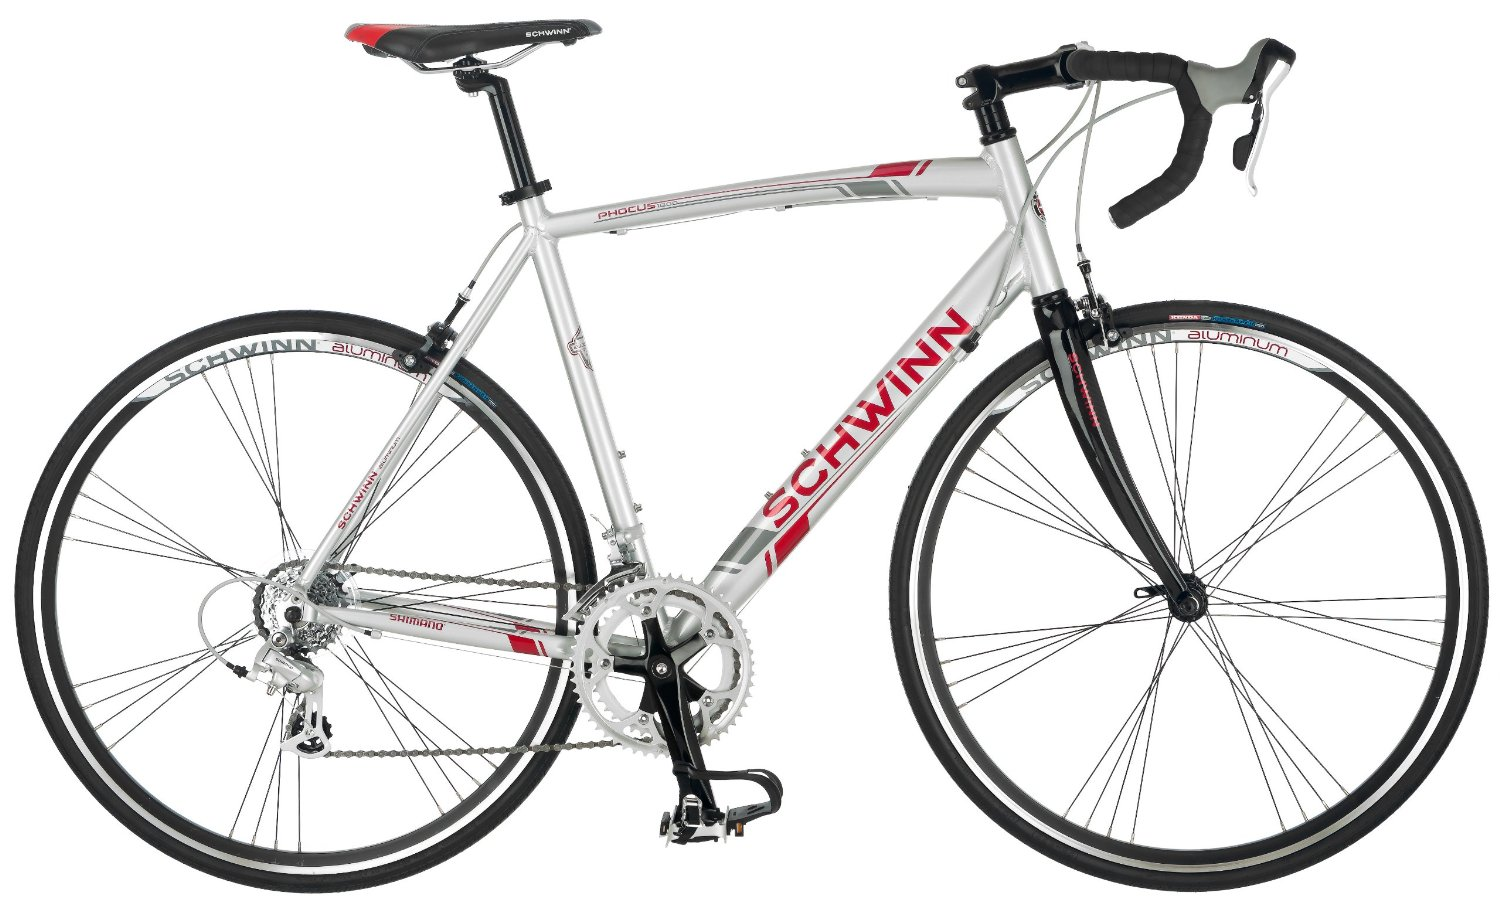 Schwinn Phocus 1600 Men's Road Bike 700c Wheels